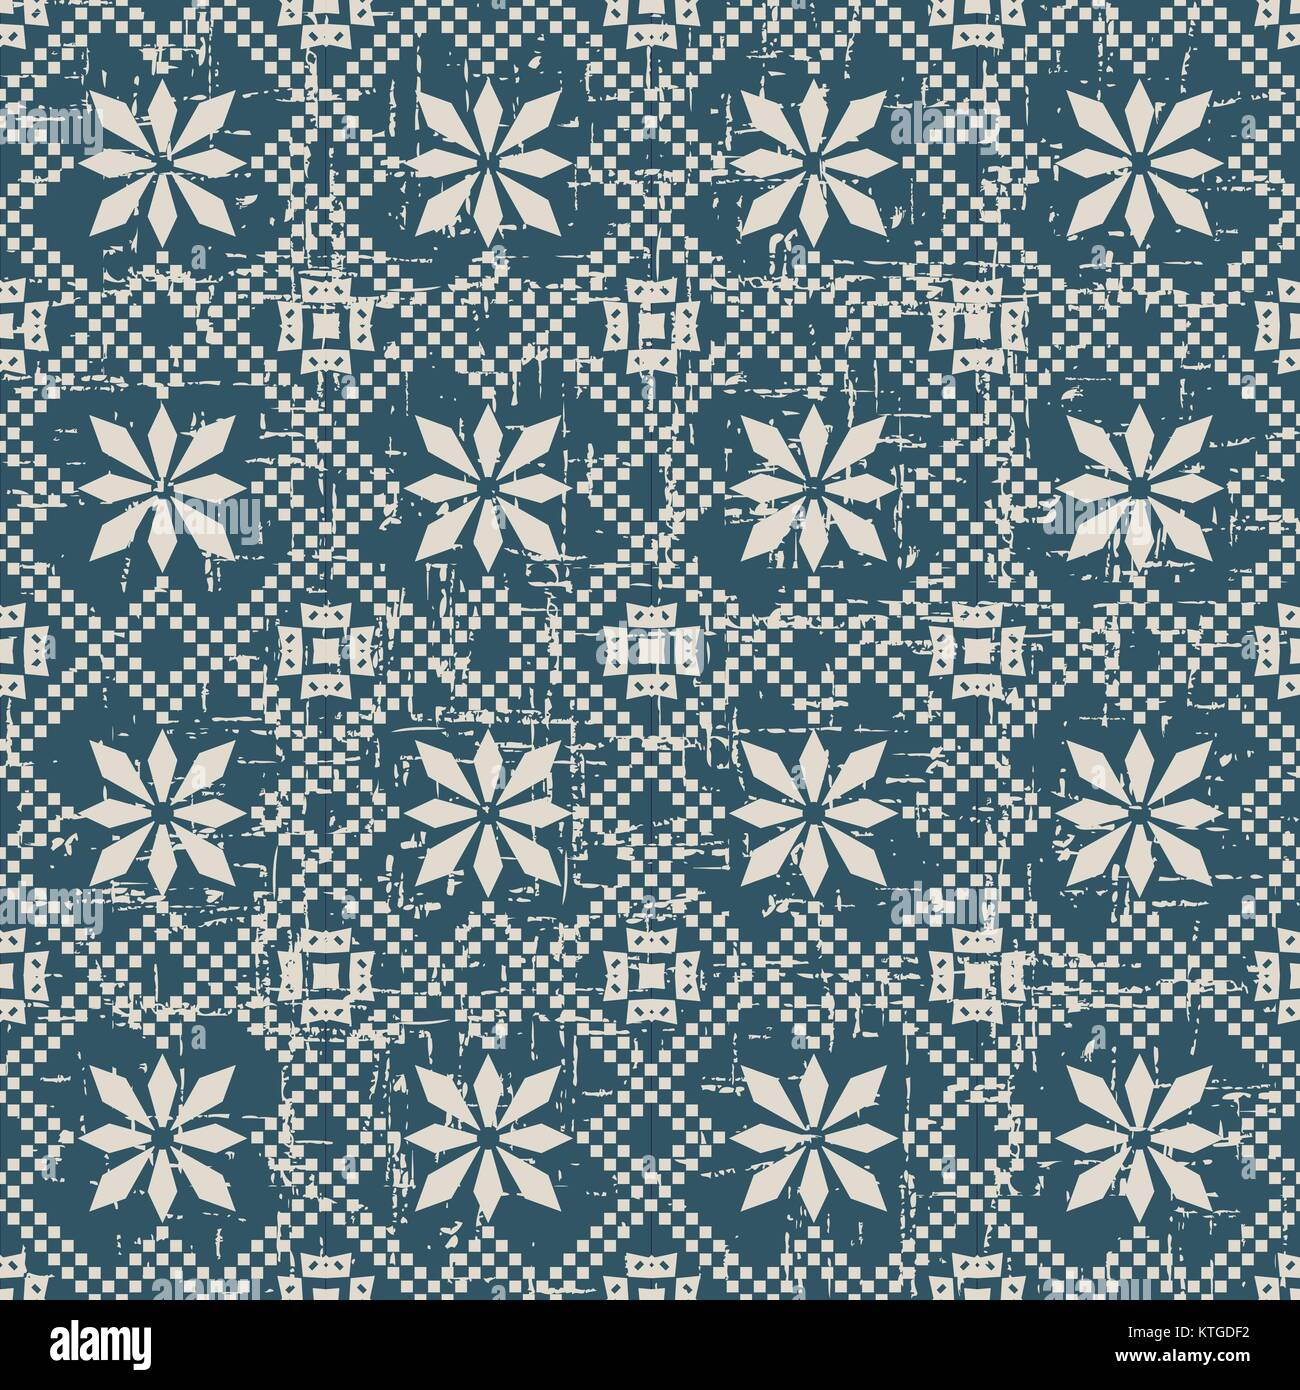 Seamless retro worn out background - Stock Vector